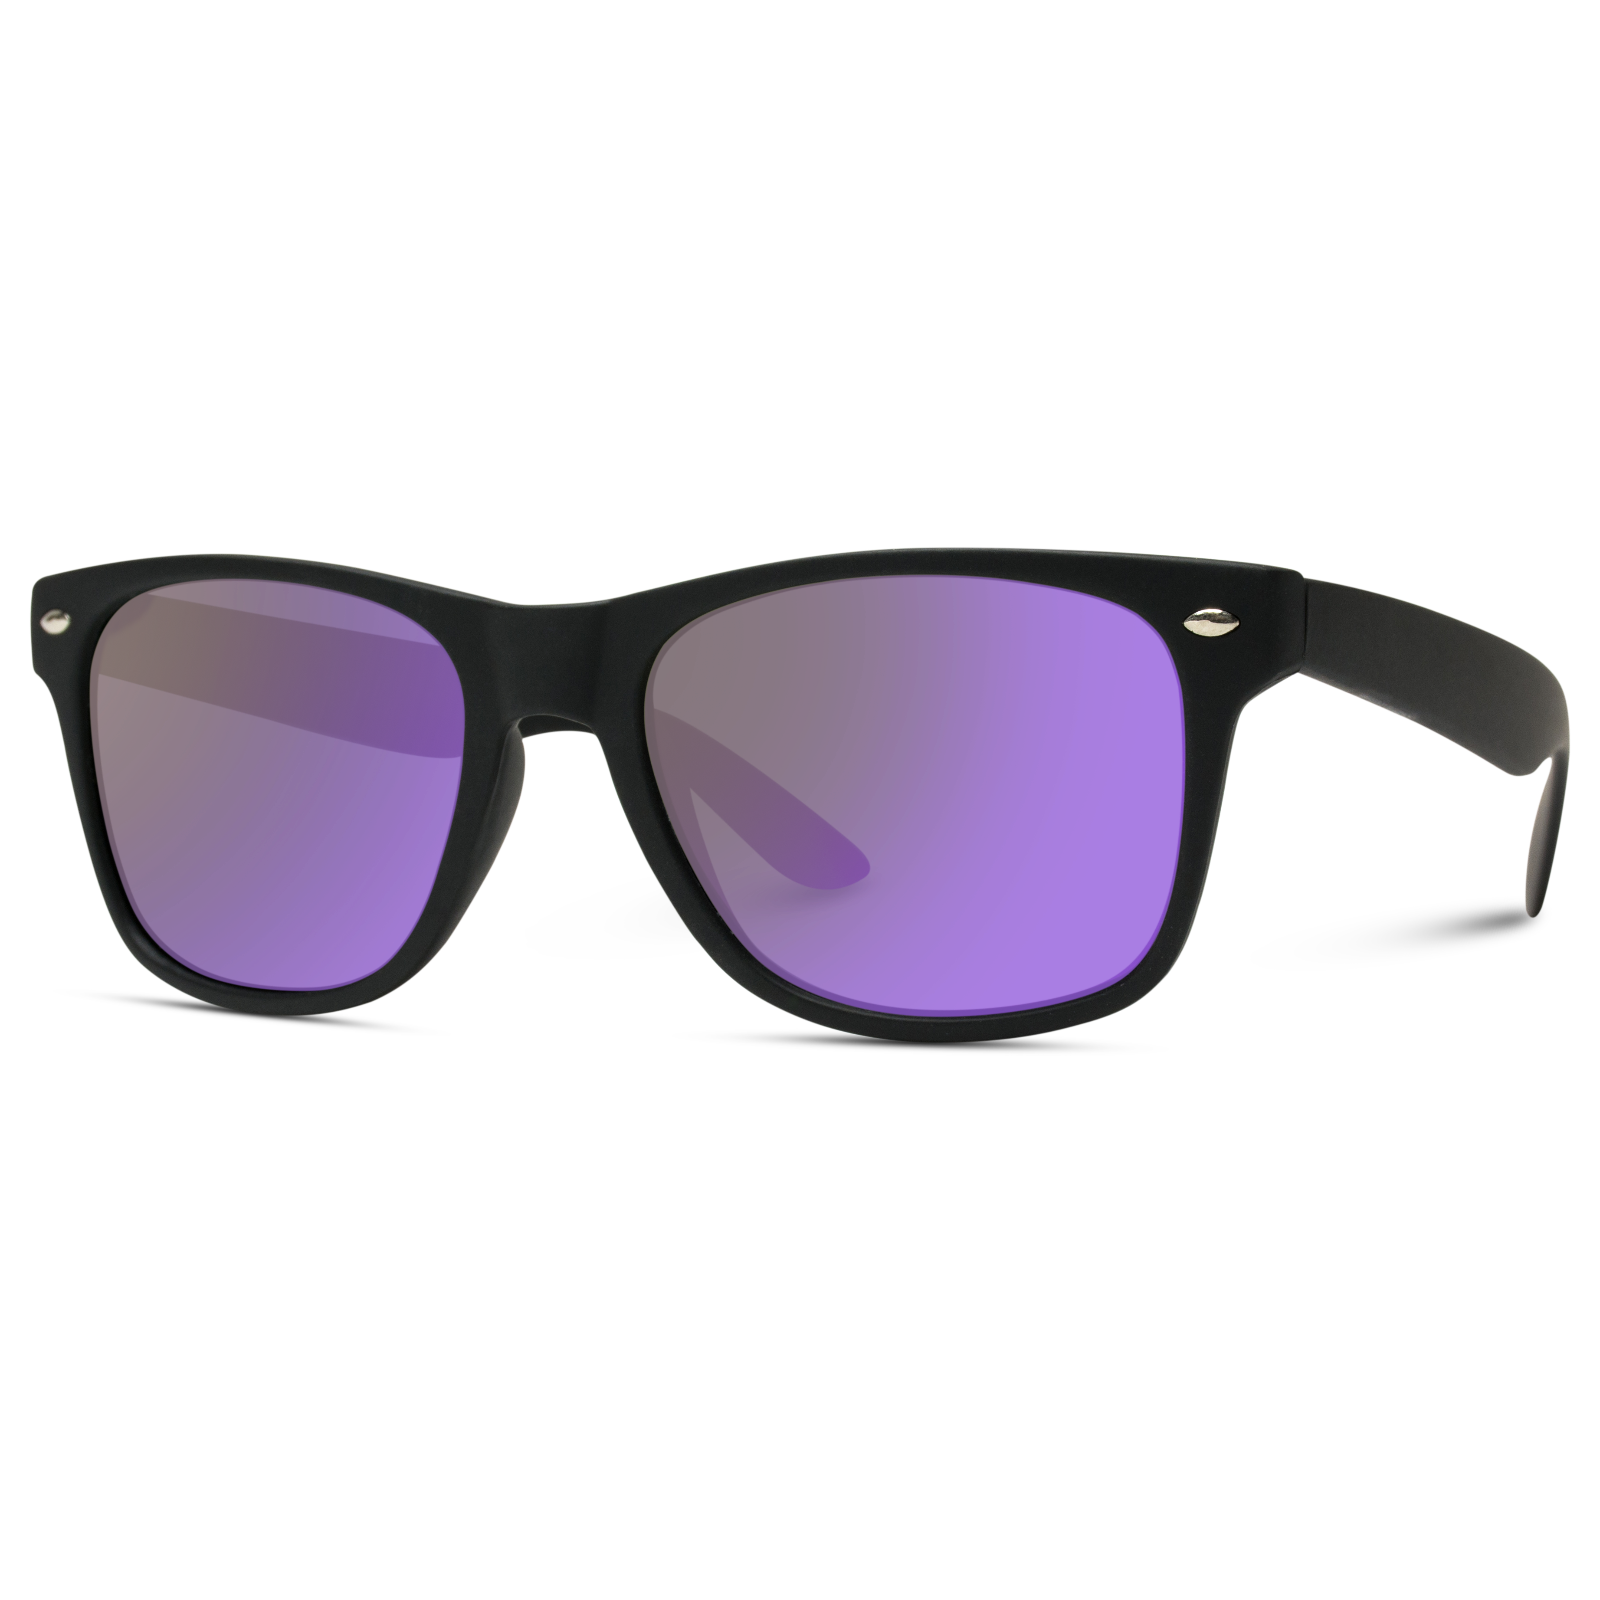 Jake - Polarized Mirrored Retro Square Frame Sunglasses